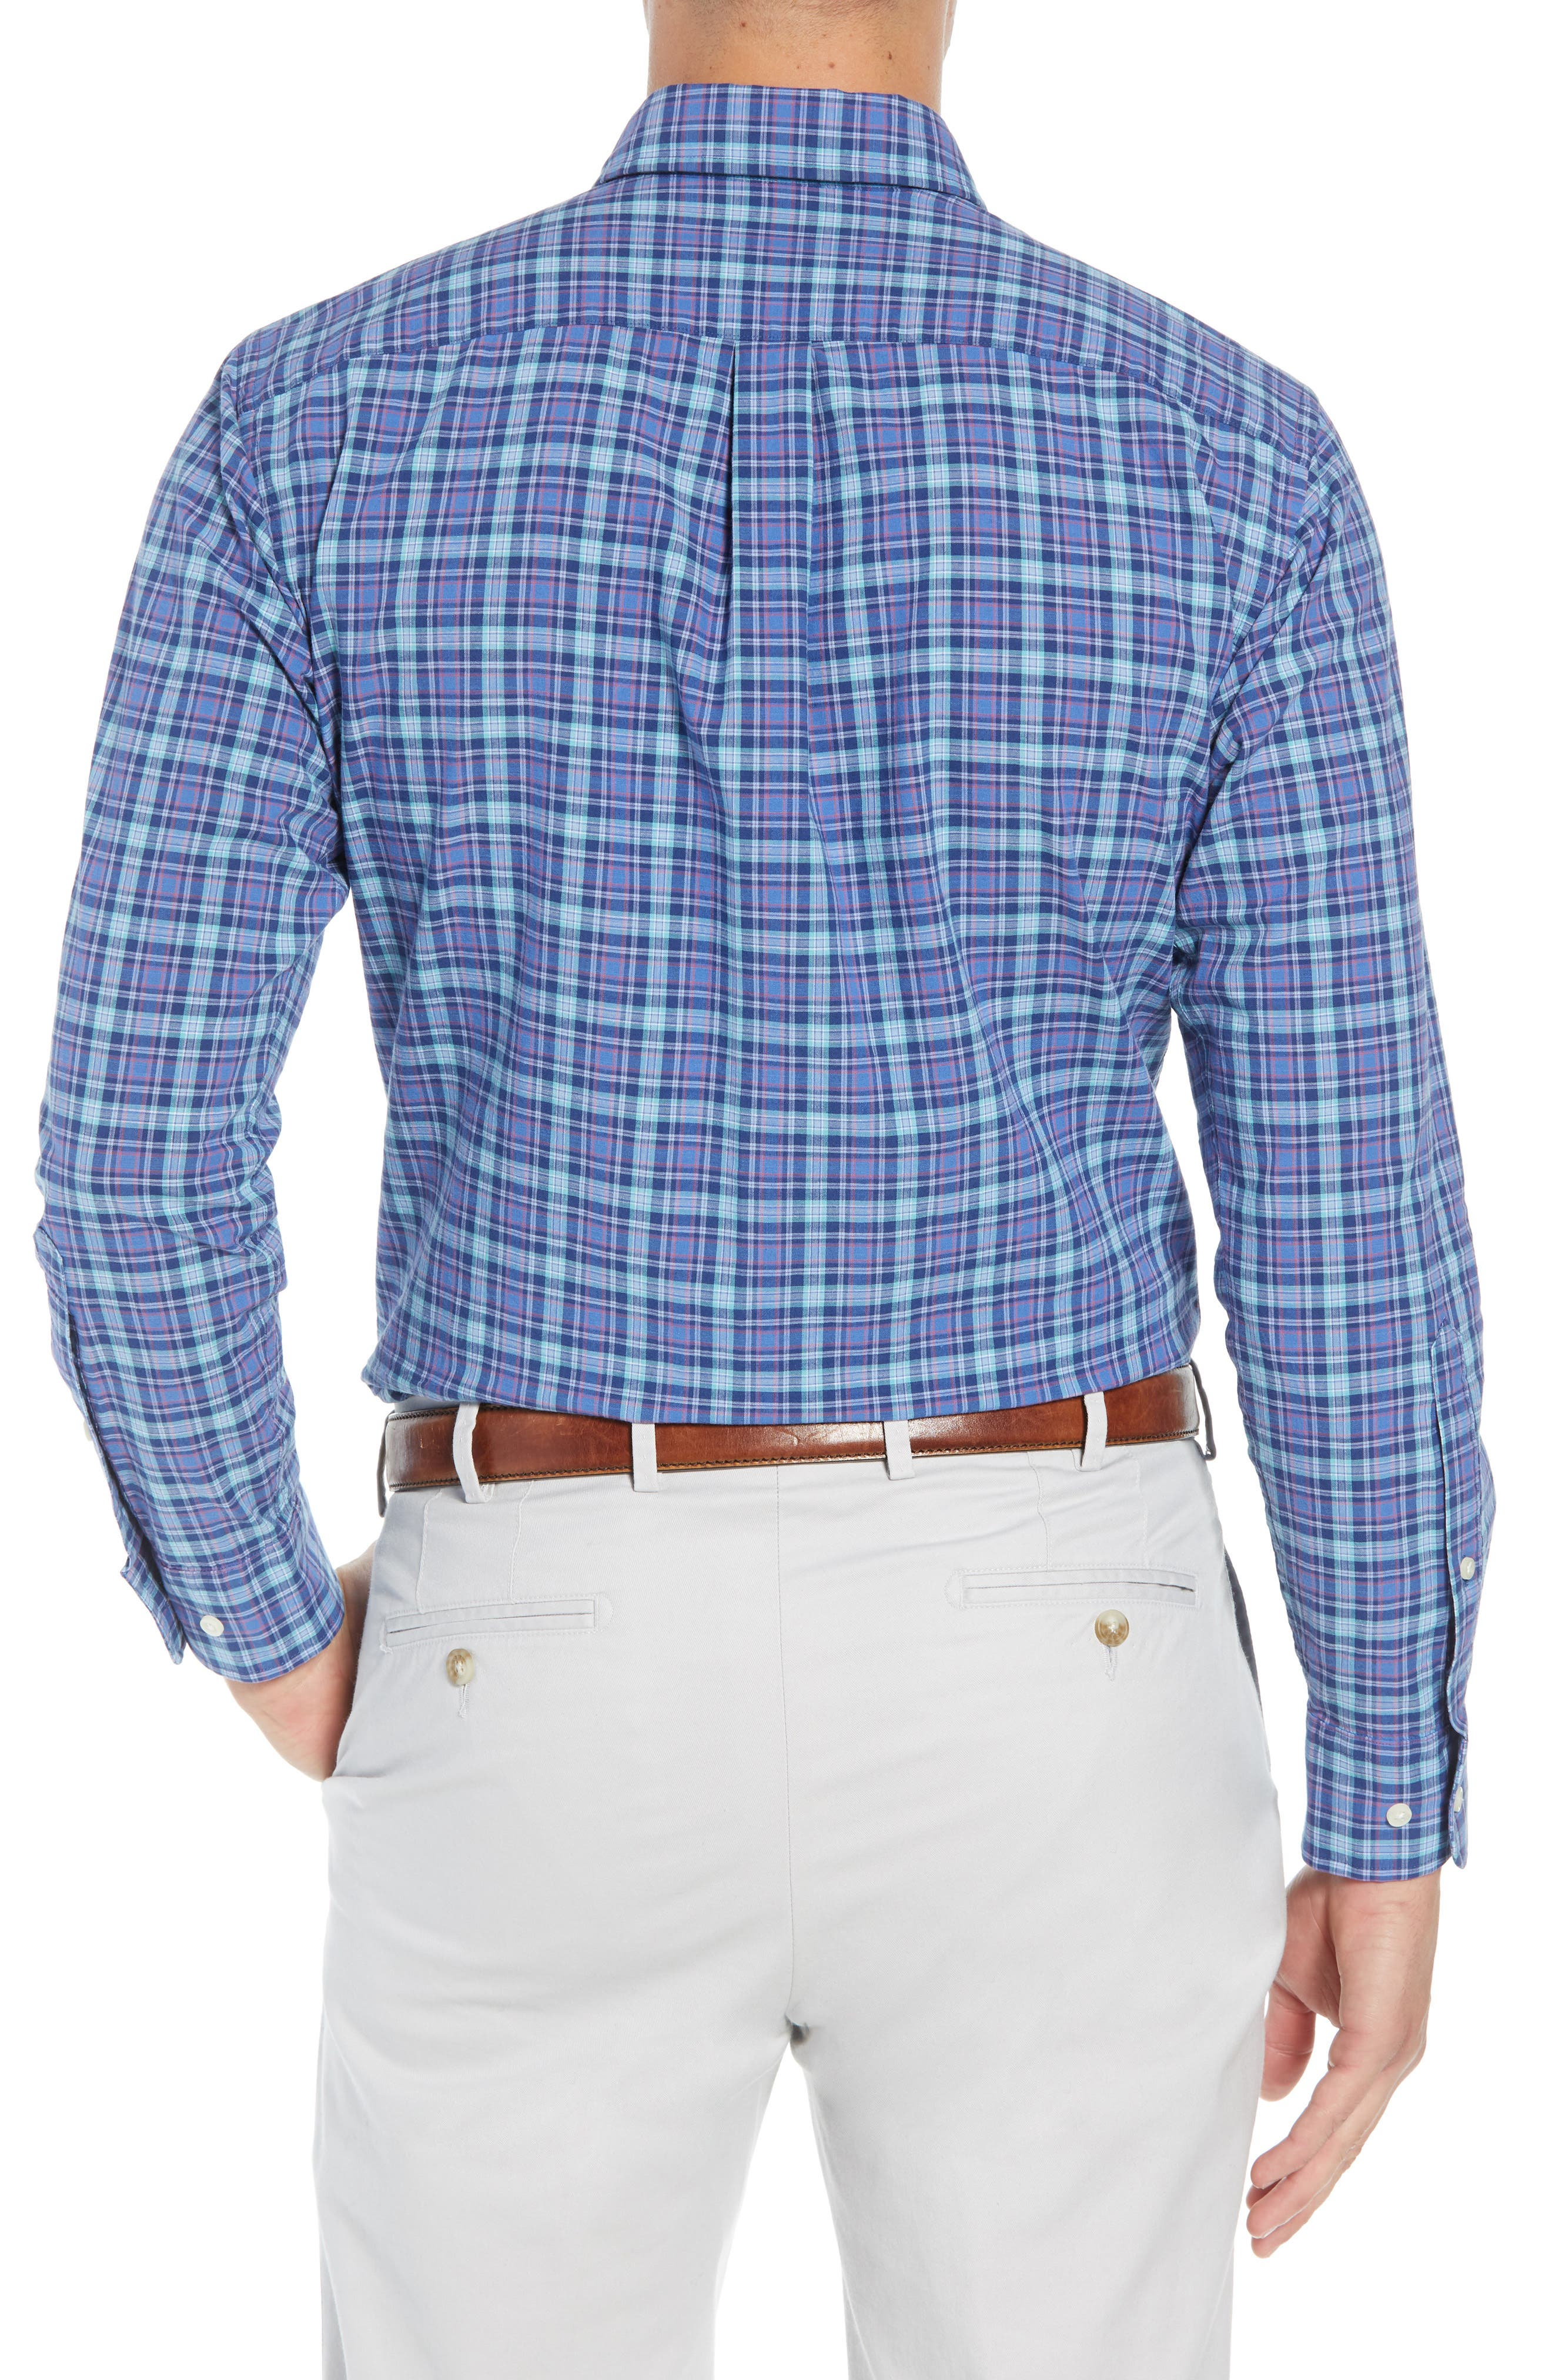 Fisherman's Wharf Regular Fit Plaid Sport Shirt,                             Alternate thumbnail 3, color,                             BLUE